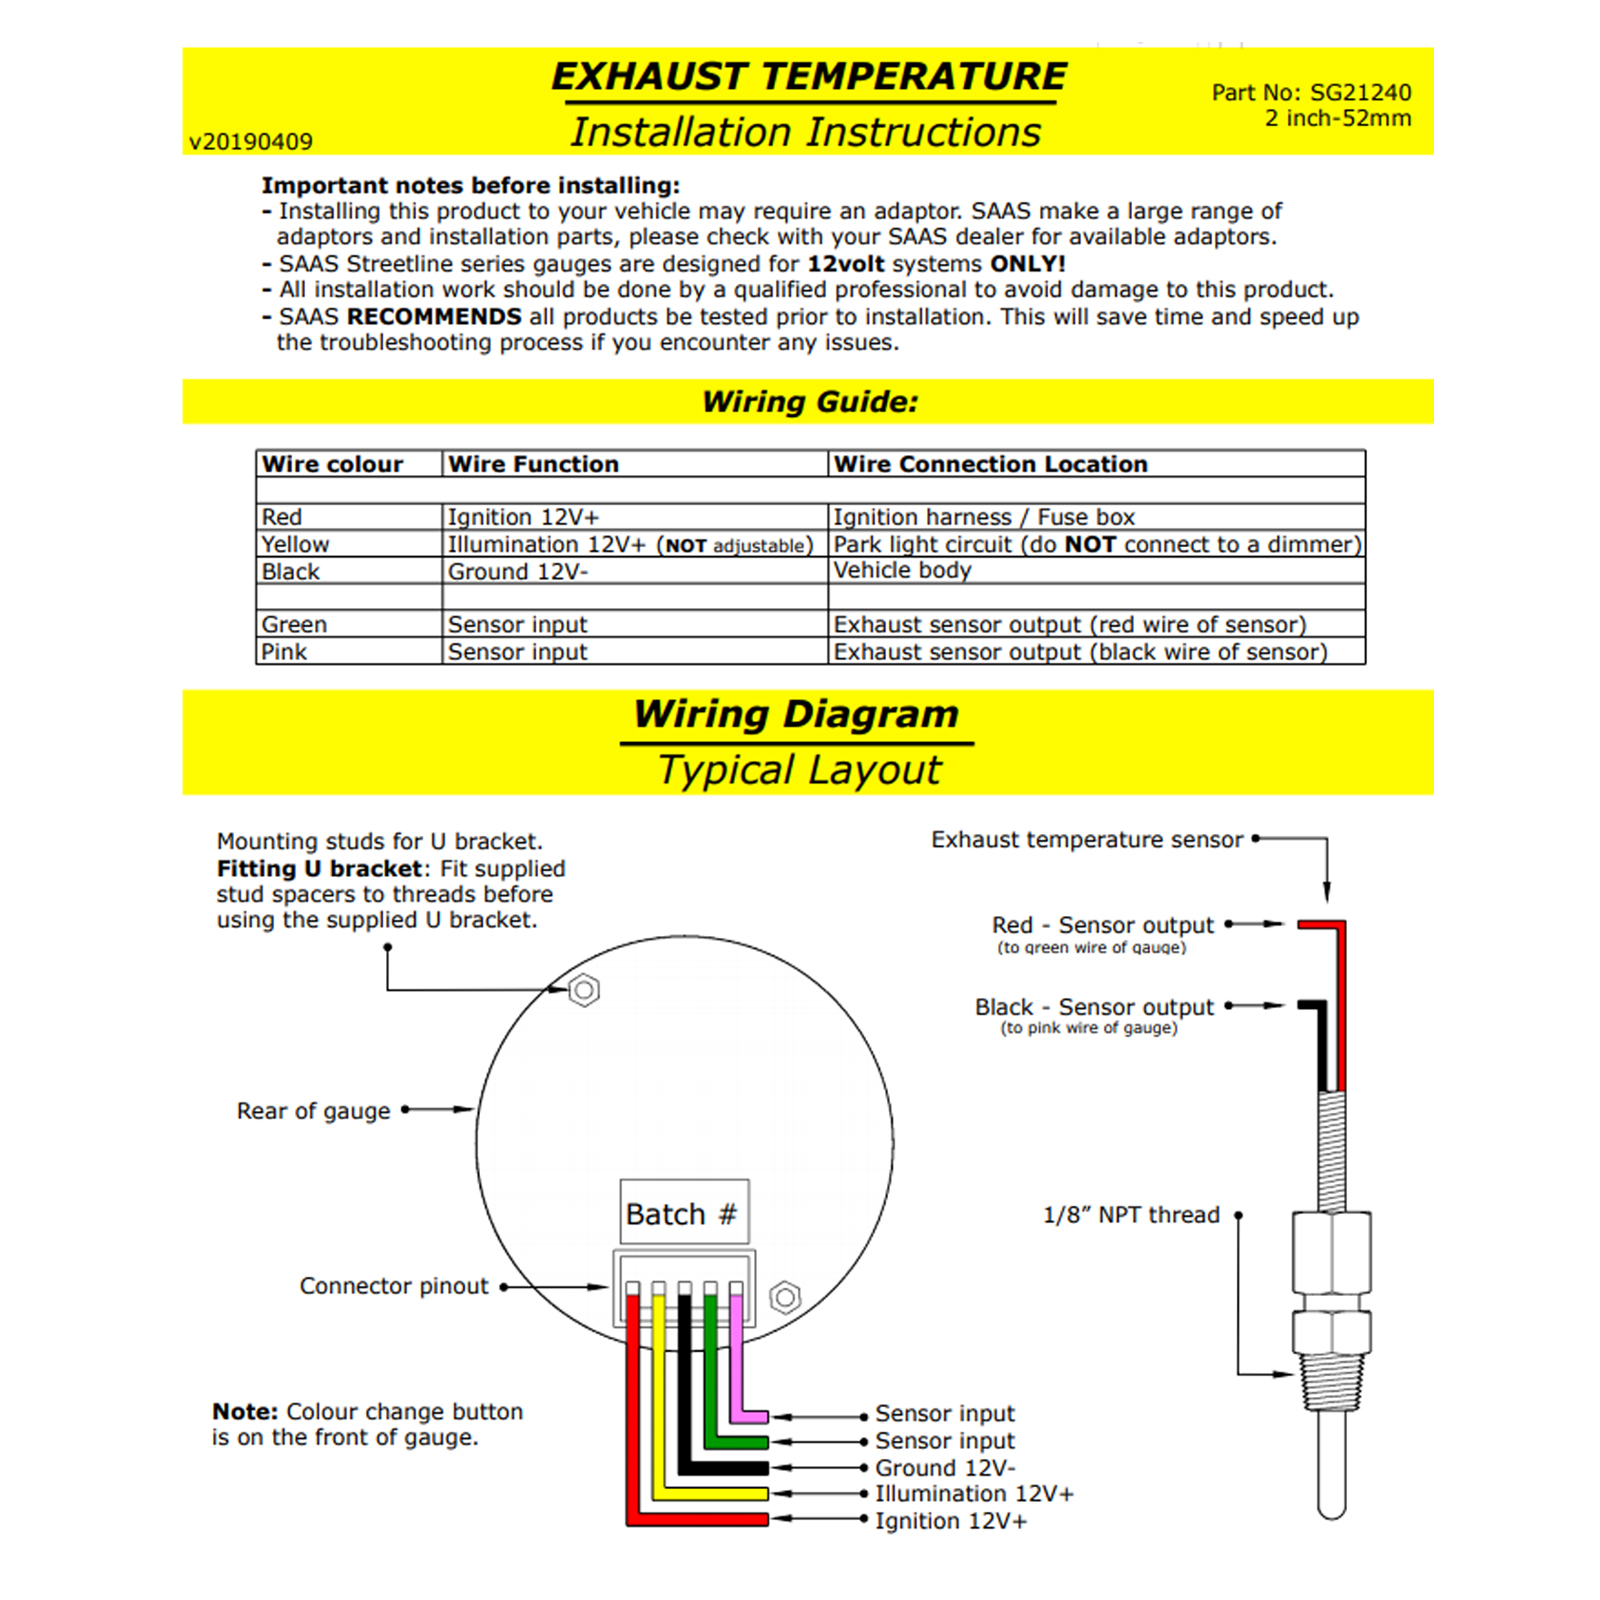 Vdo Exhaust Temperature Gauge Wiring Product Wiring Diagrams \u2022 Westach Temp  Gauge Wiring